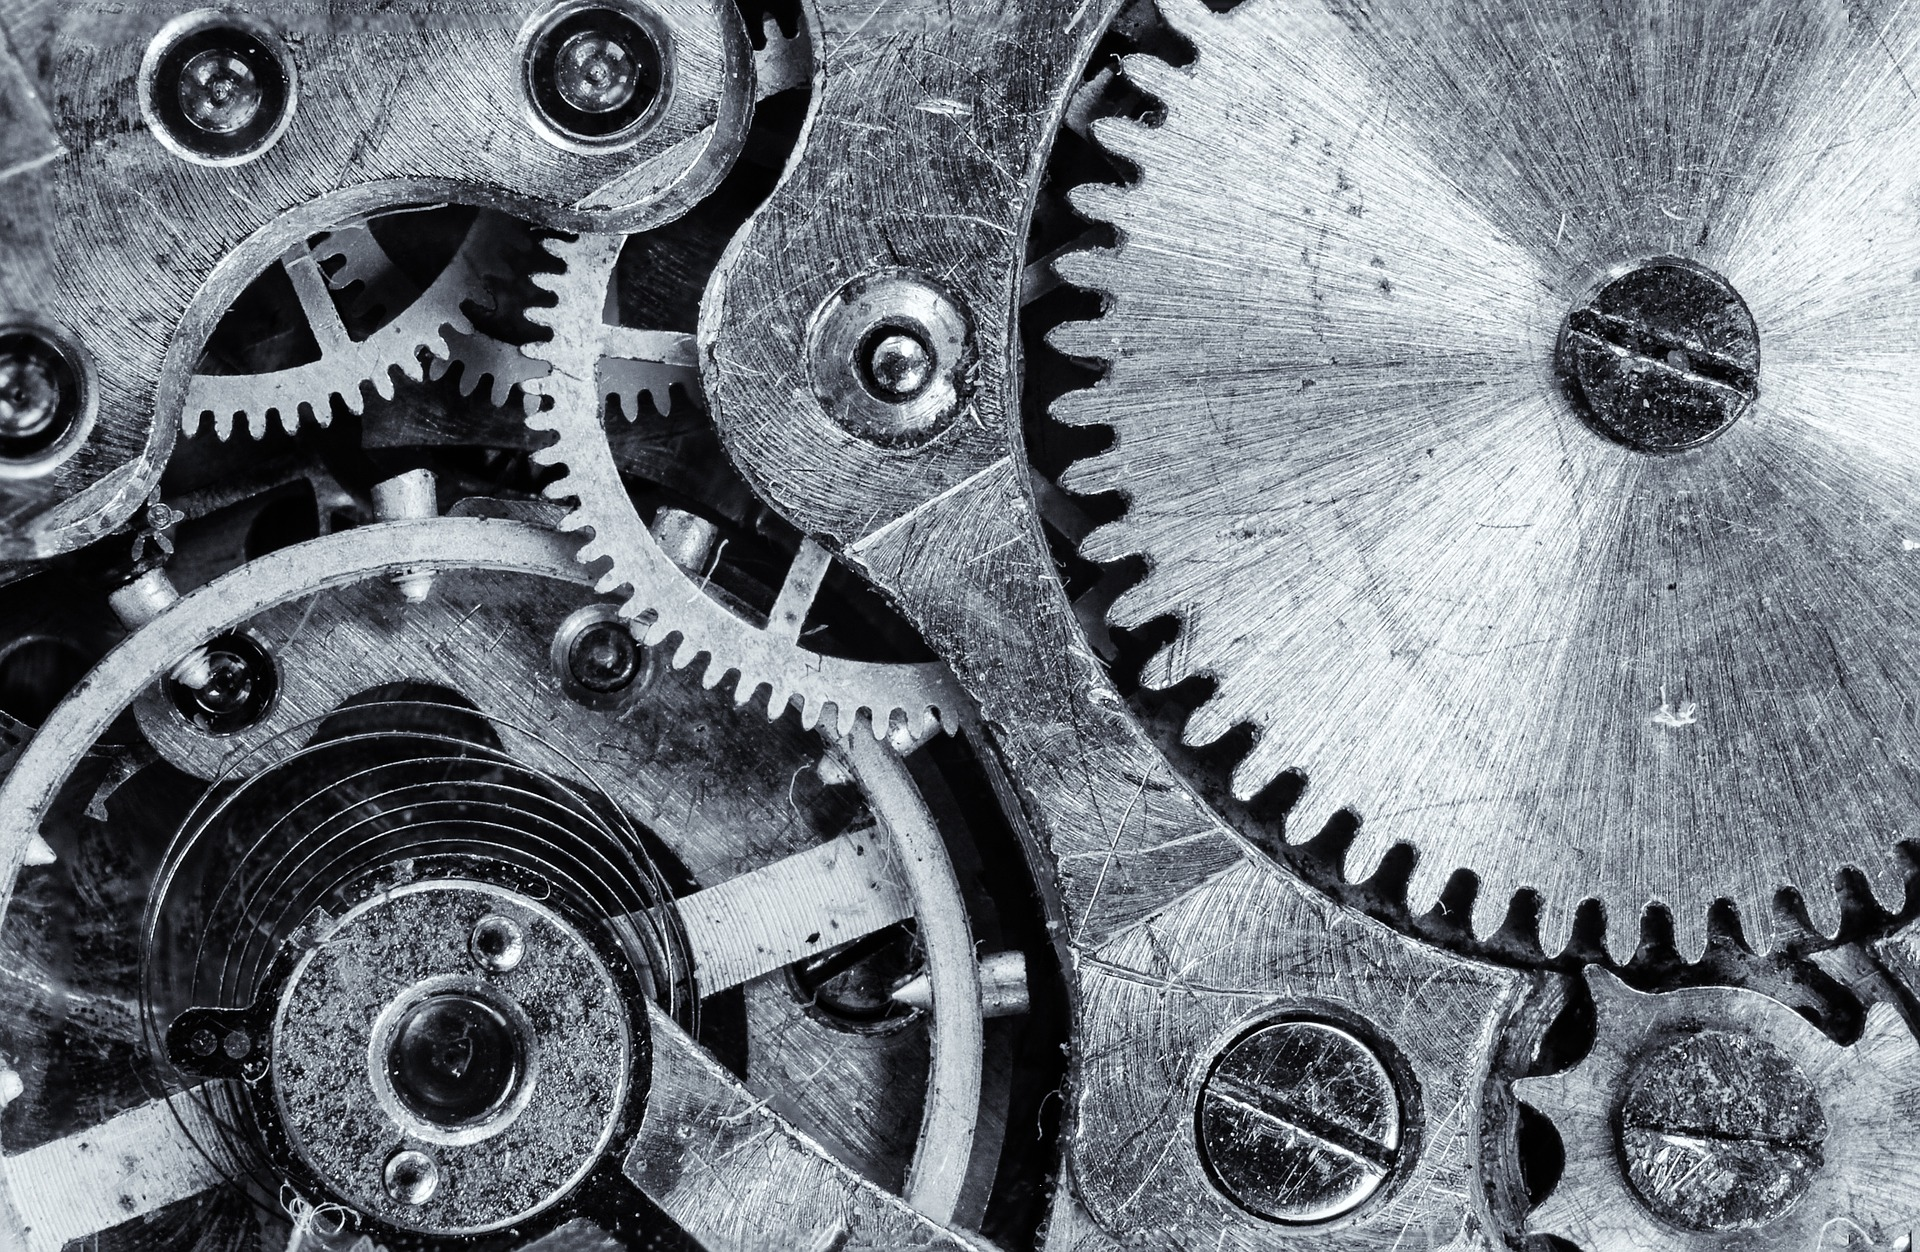 Close up photograph of gears